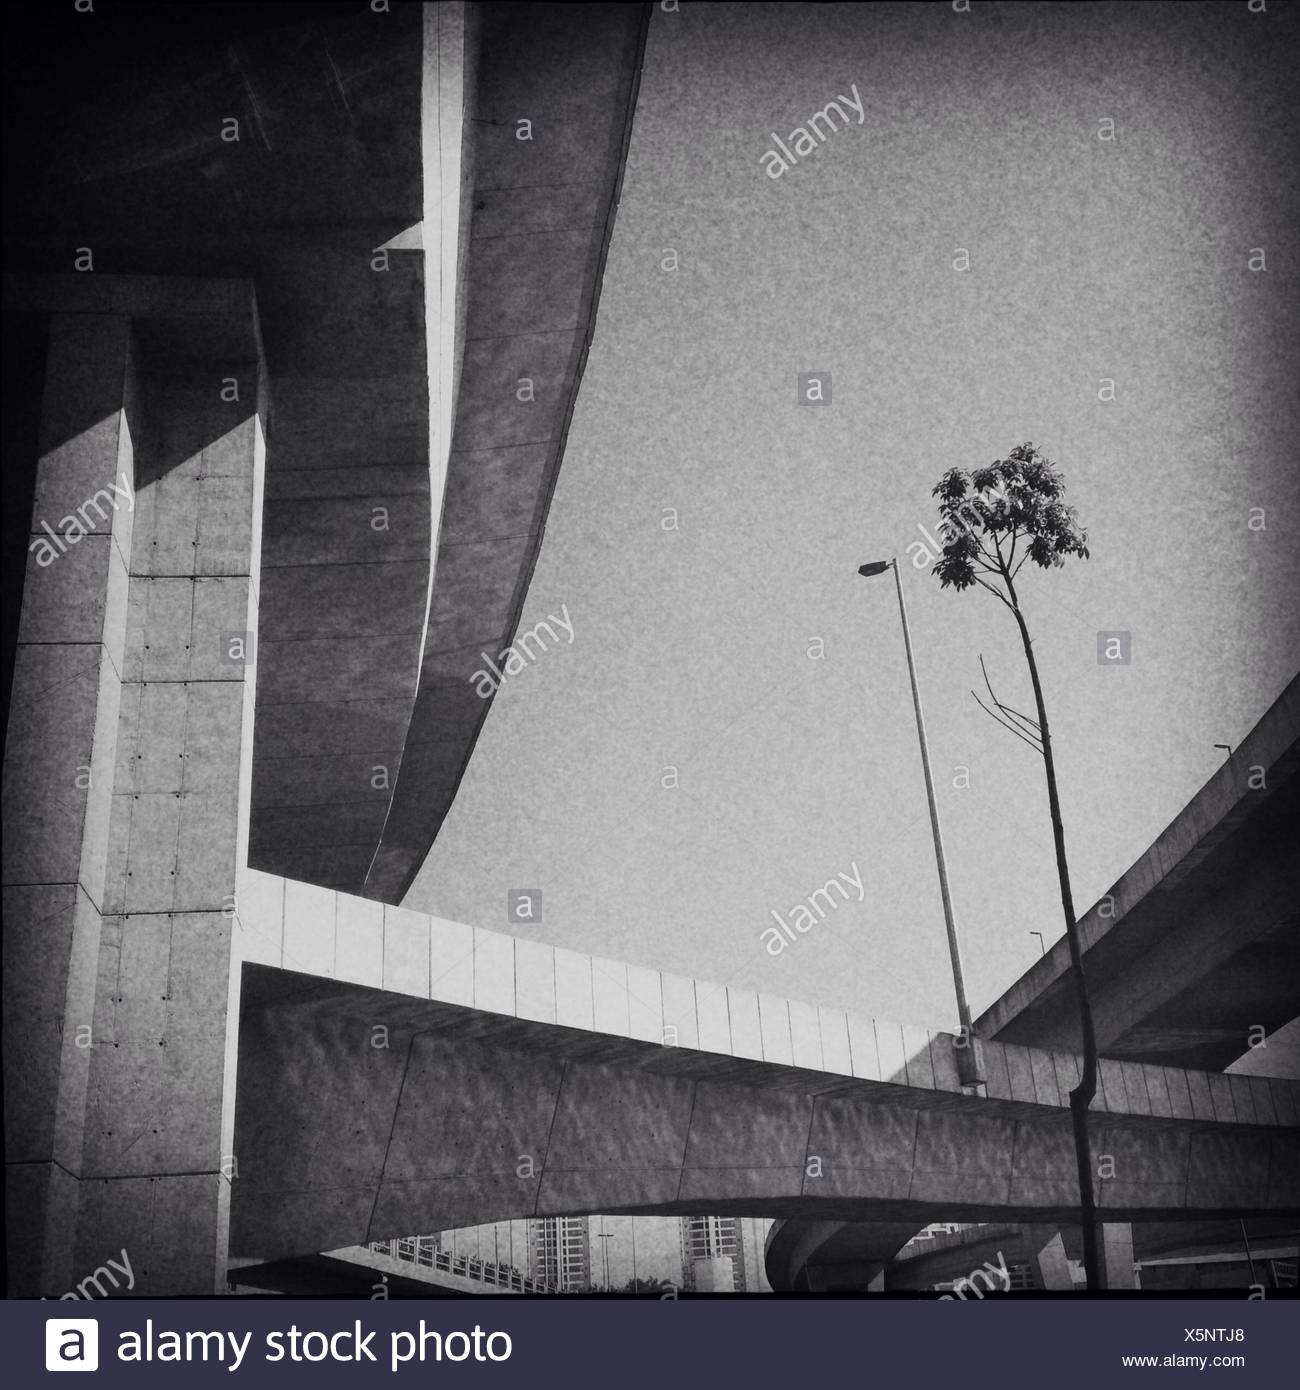 Brazil, Sao Paulo, Elevated roads - Stock Image